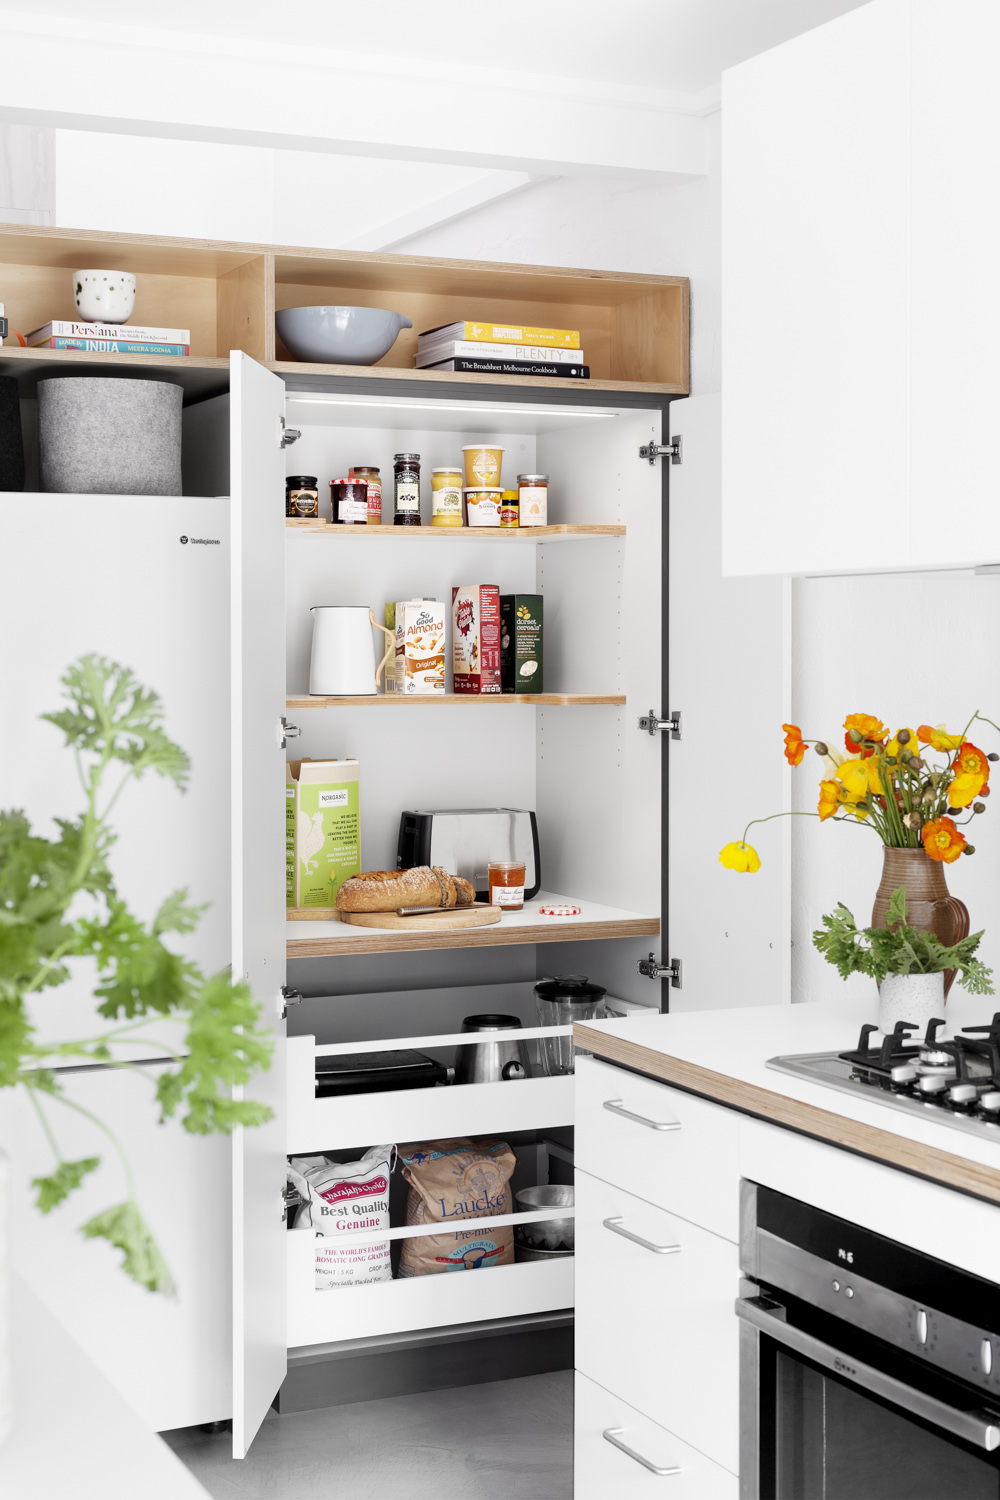 The Cantilever Appliance Cabinet is a work space and storage cabinet in one designed to make daily food prep tidy without the fuss.